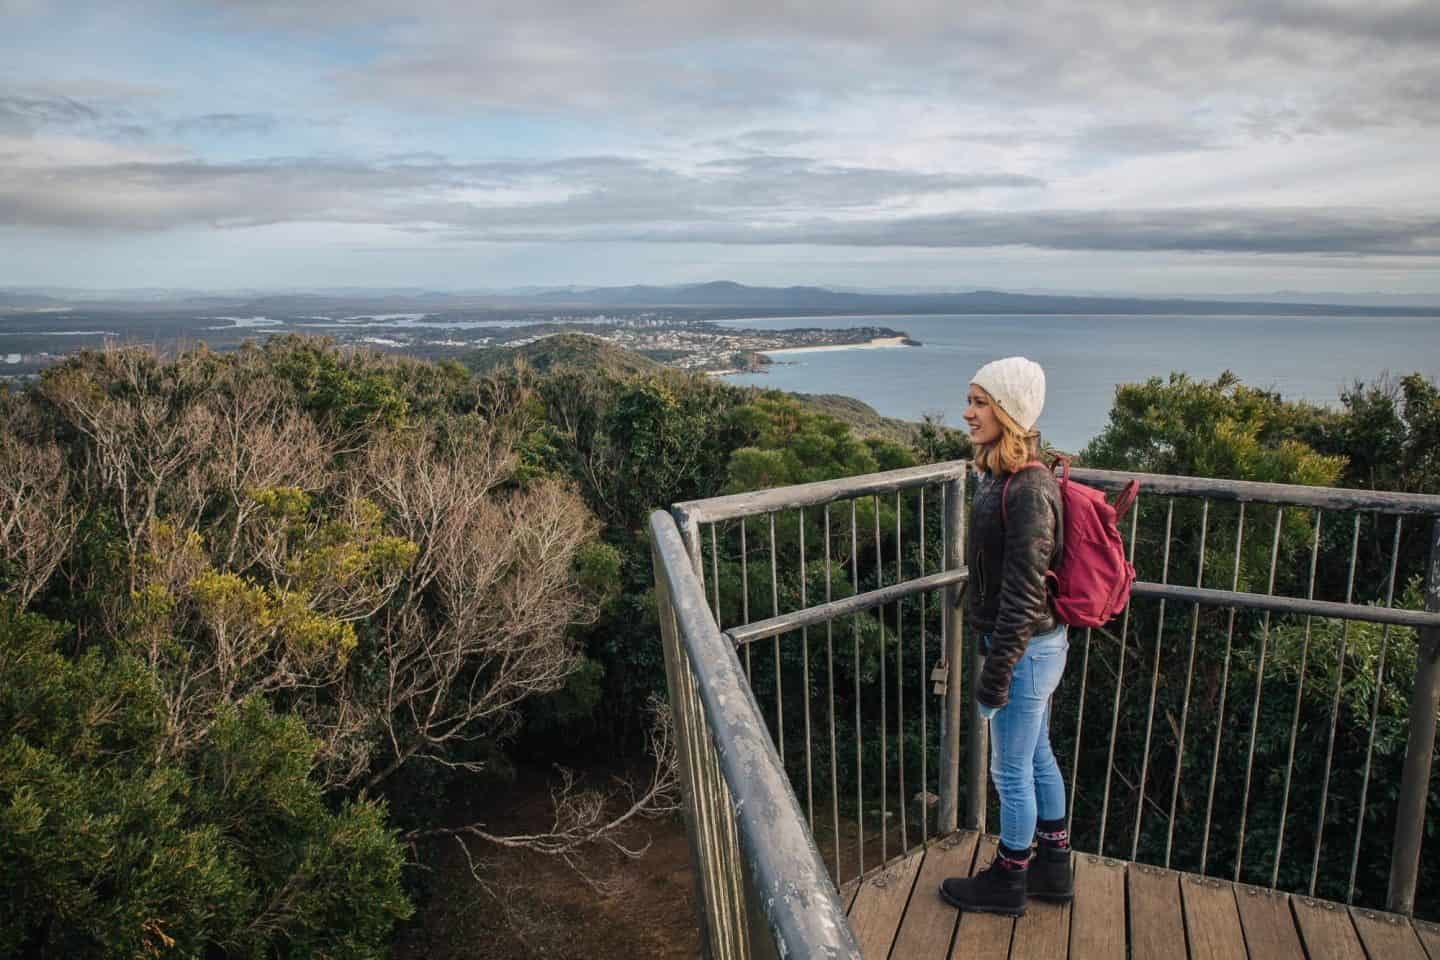 Forster nsw, things to do in forster, what to do in forster, things to do forster, camping in forster, beaches in forster, beaches at forster, cape hawk, cape hawk lookout